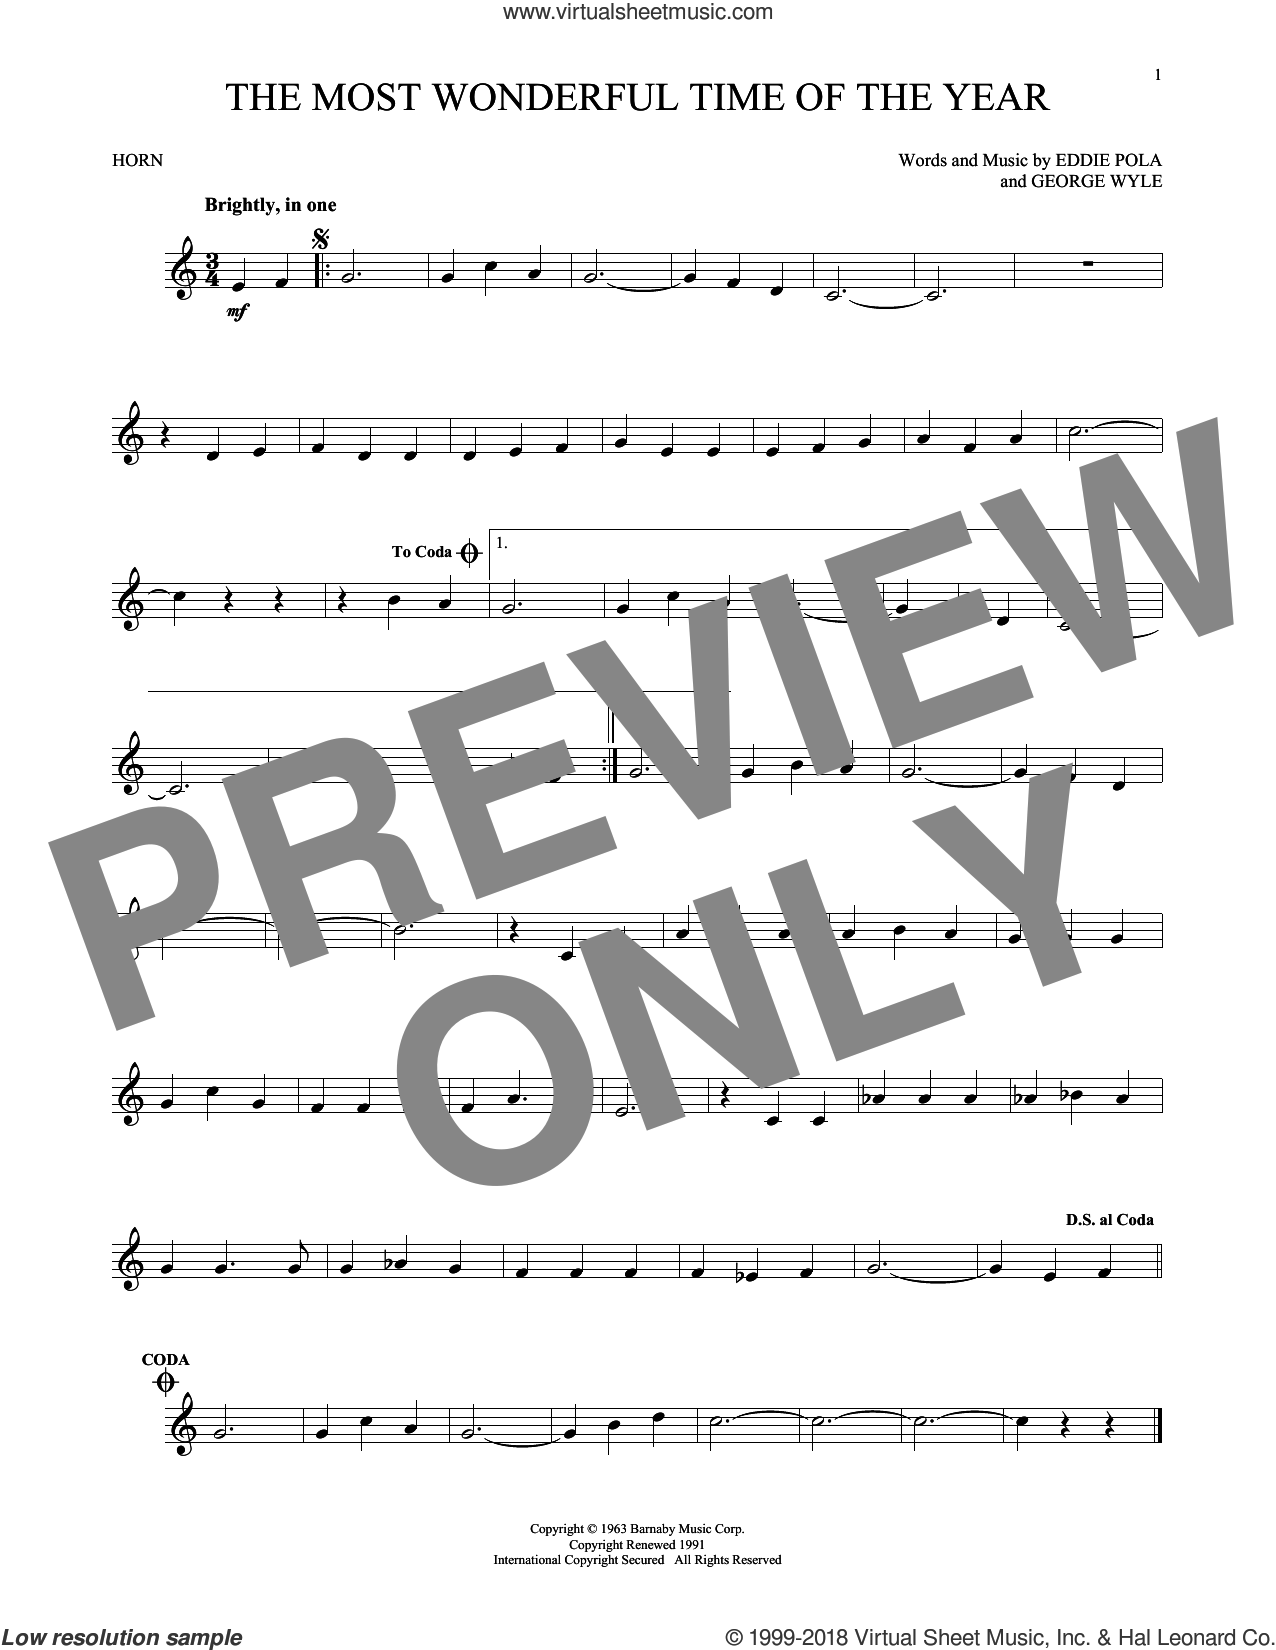 The Most Wonderful Time Of The Year sheet music for horn solo by George Wyle, Andy Williams, Eddie Pola and George Wyle & Eddie Pola, intermediate skill level